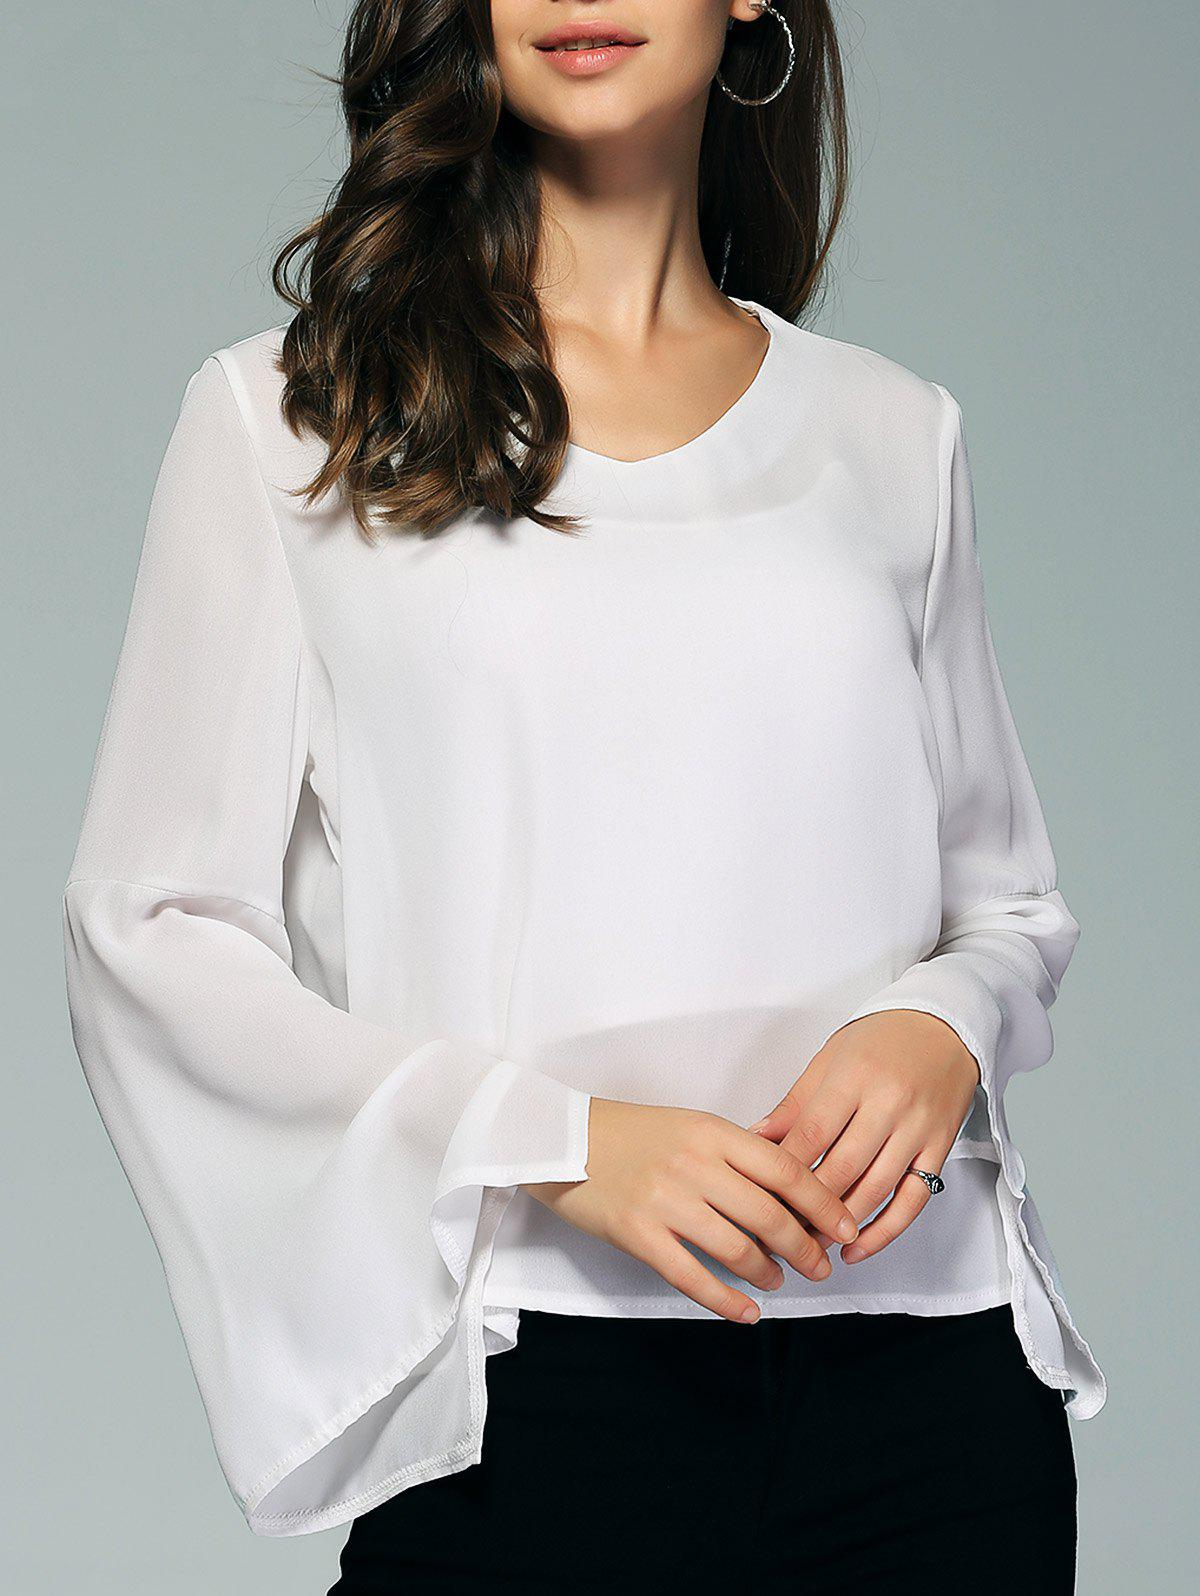 Concise Flare Sleeve Pure Color Blouse For Women - WHITE XL